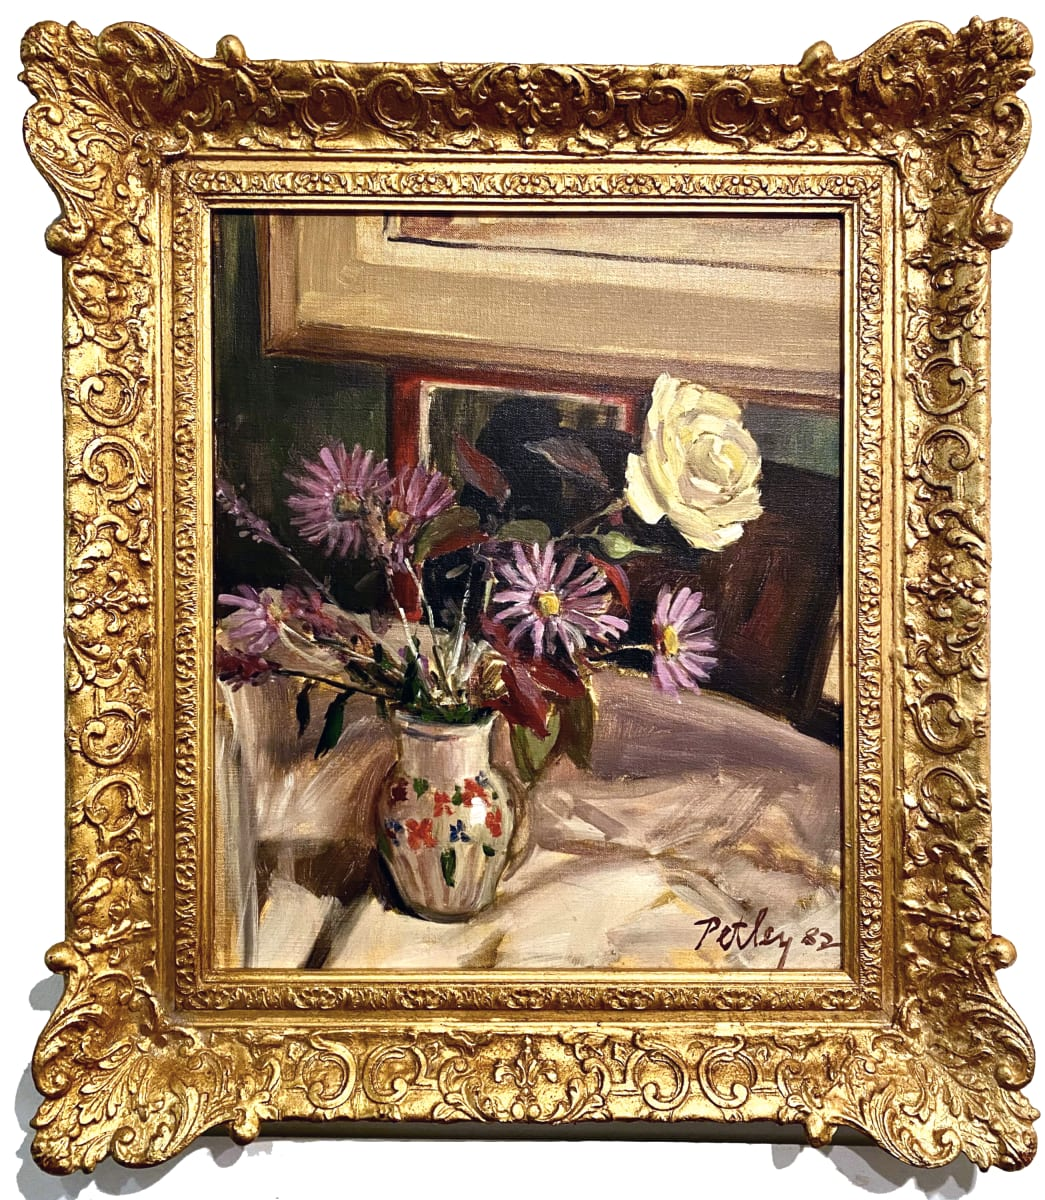 1377 - Still Life With A Yellow Rose by Llewellyn Petley-Jones (1908-1986)